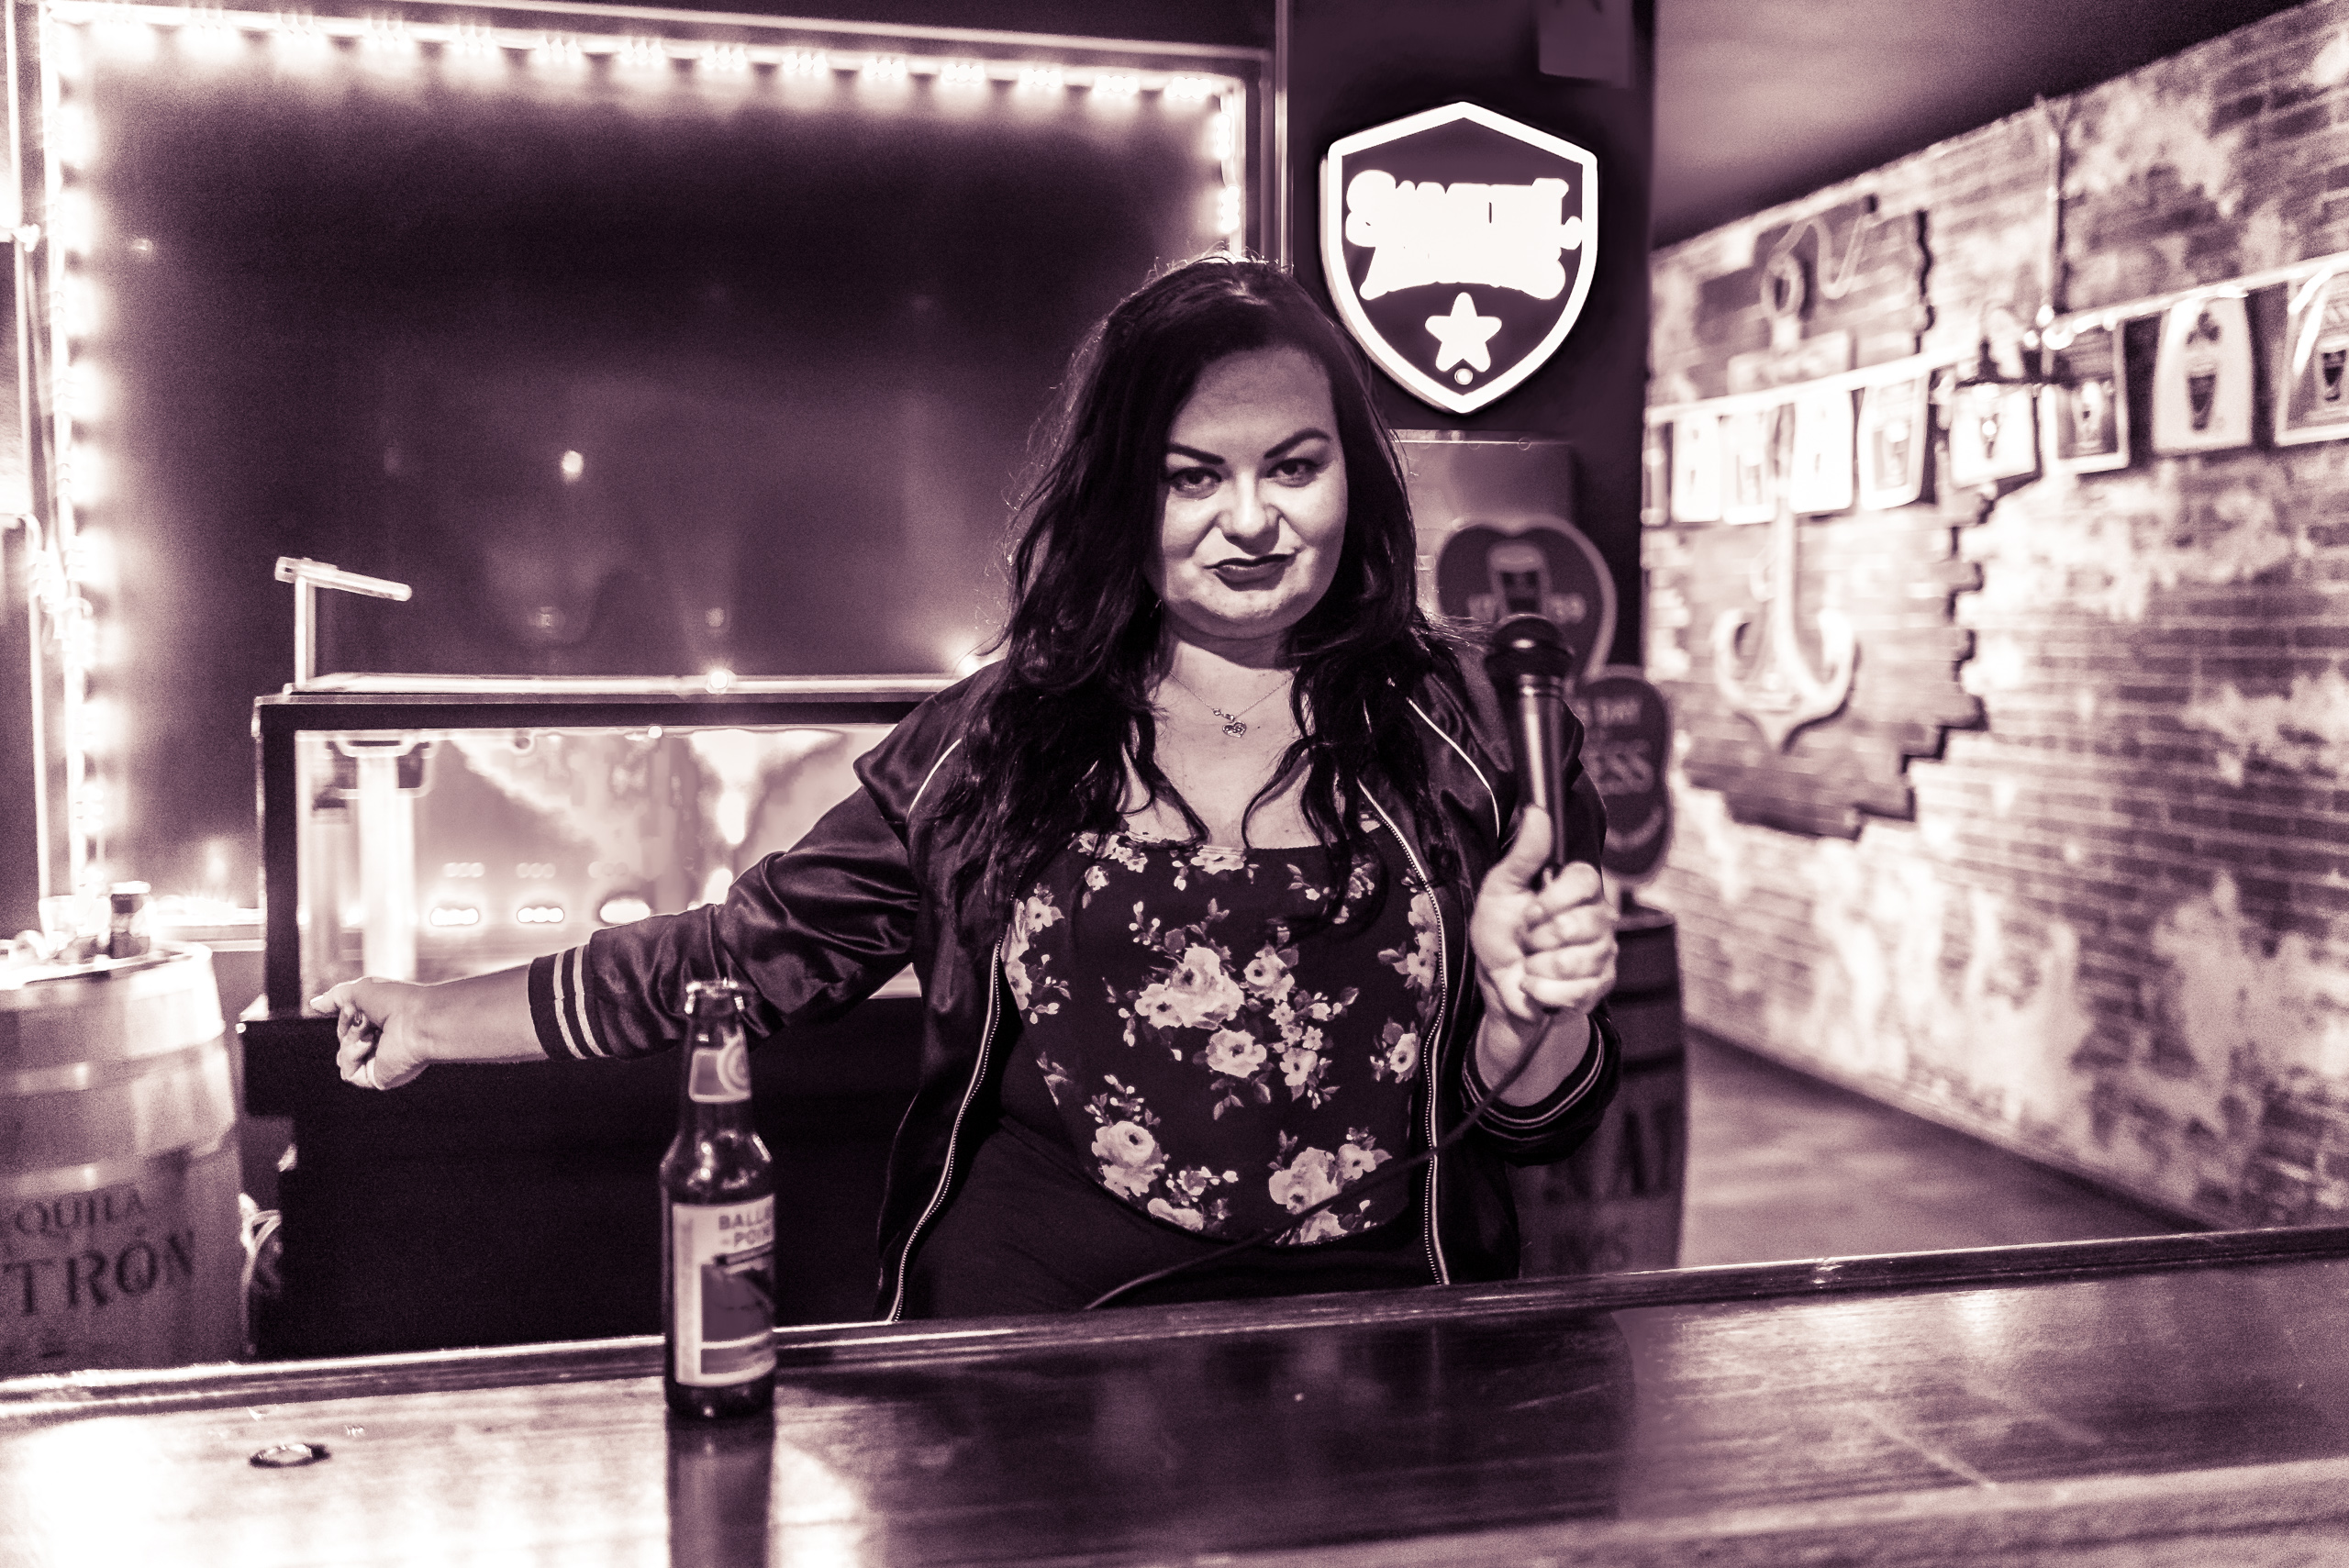 A woman in the window of a bar on Hollywood Blvd with a microphone and inviting pedestrians into the bar